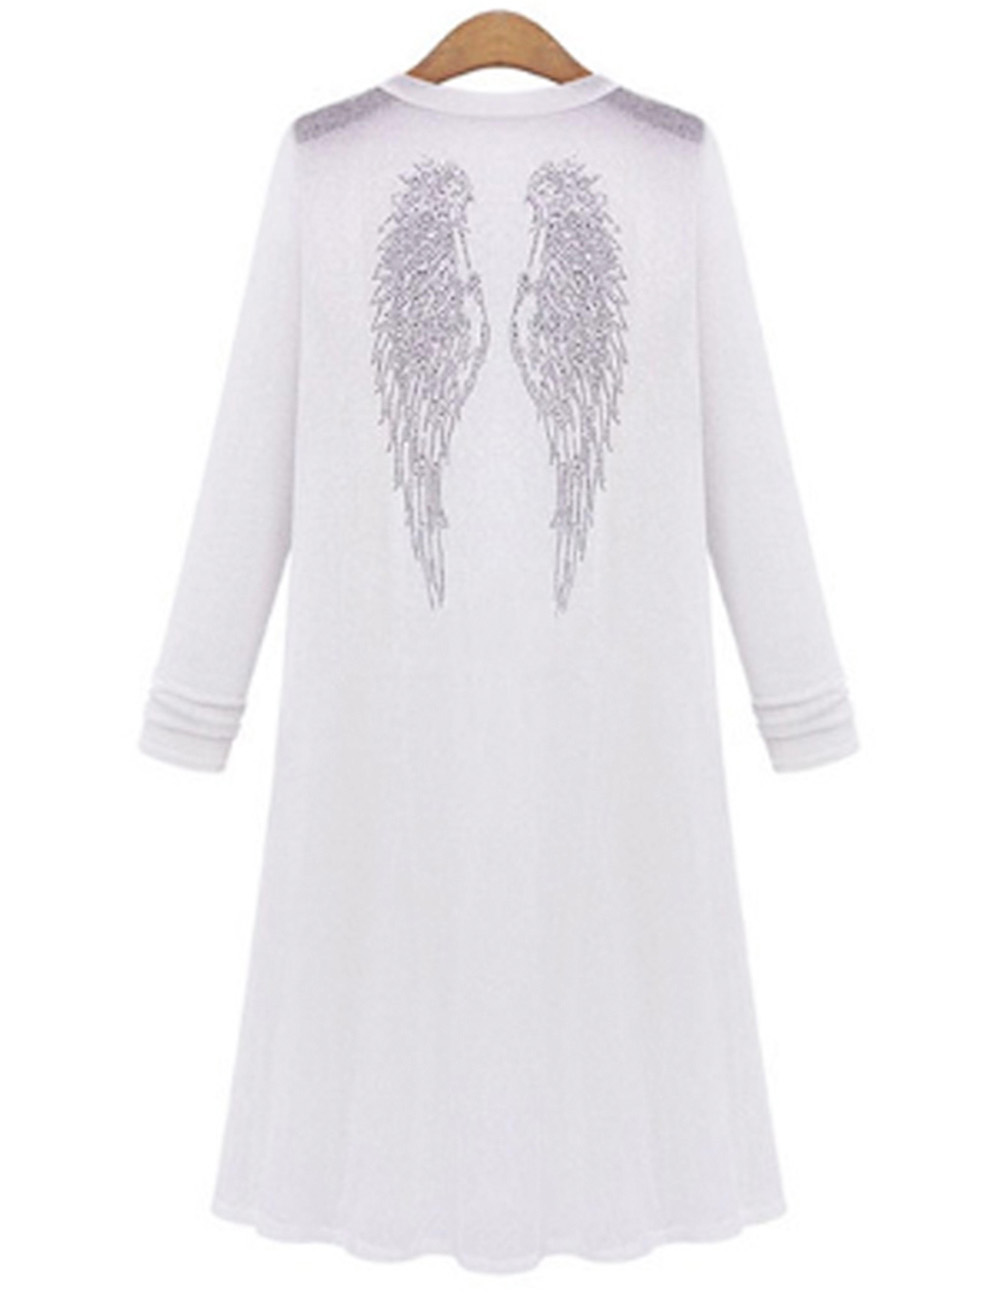 Womens Angel Wings Knitted Rhinestone Long Sleeve Plus Coat Cardigan Out...